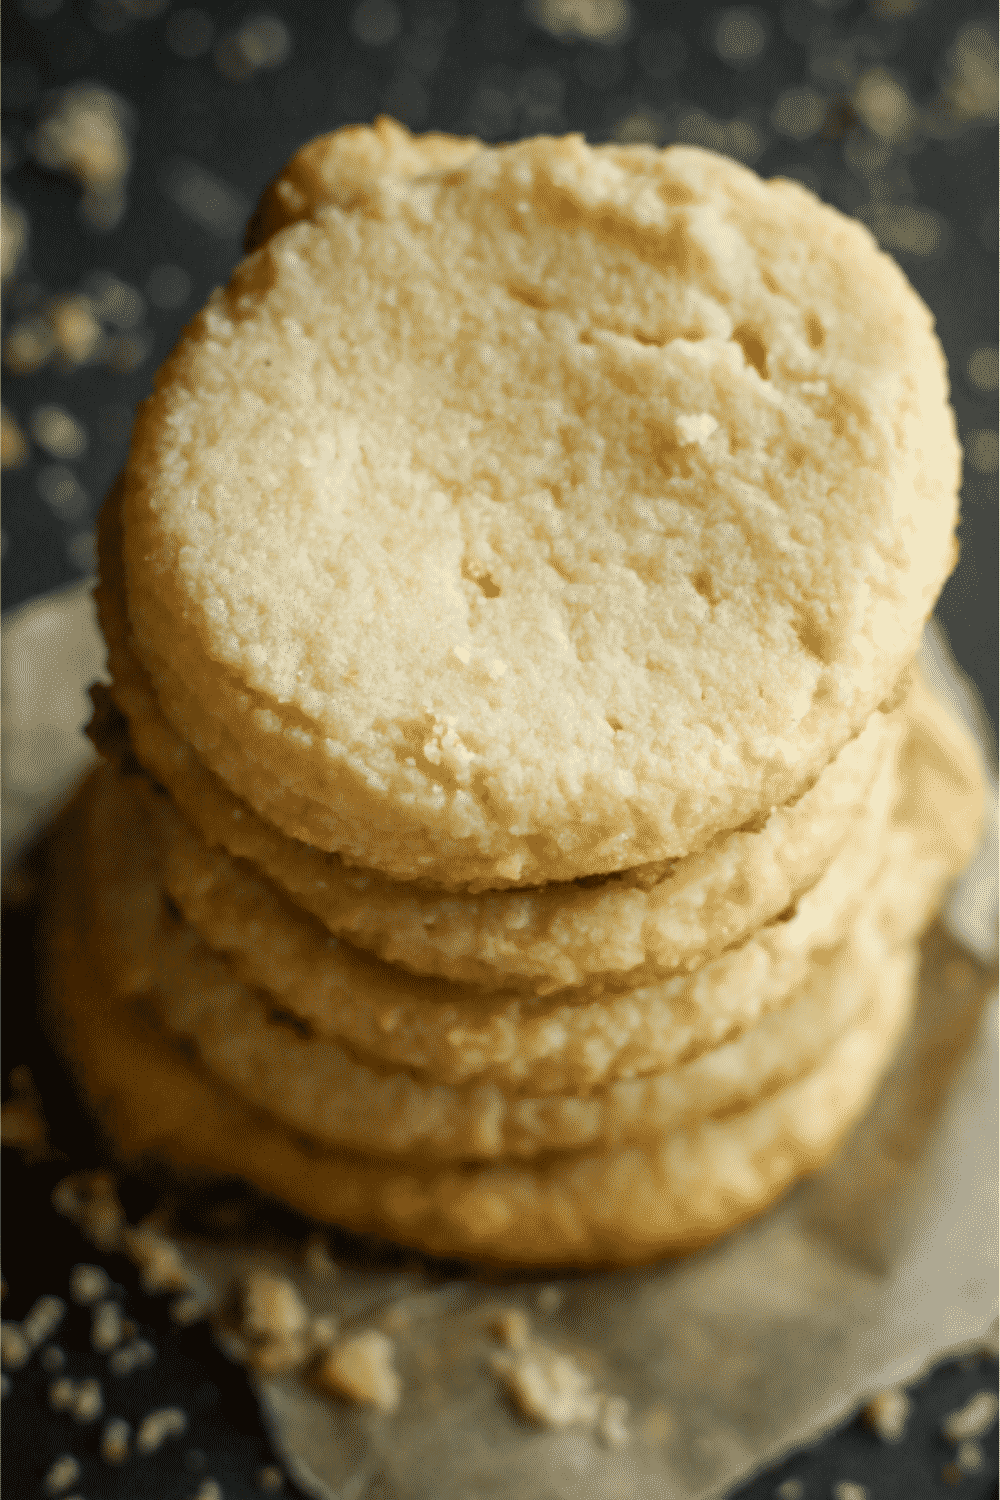 A stack of five keto shortbread cookies.